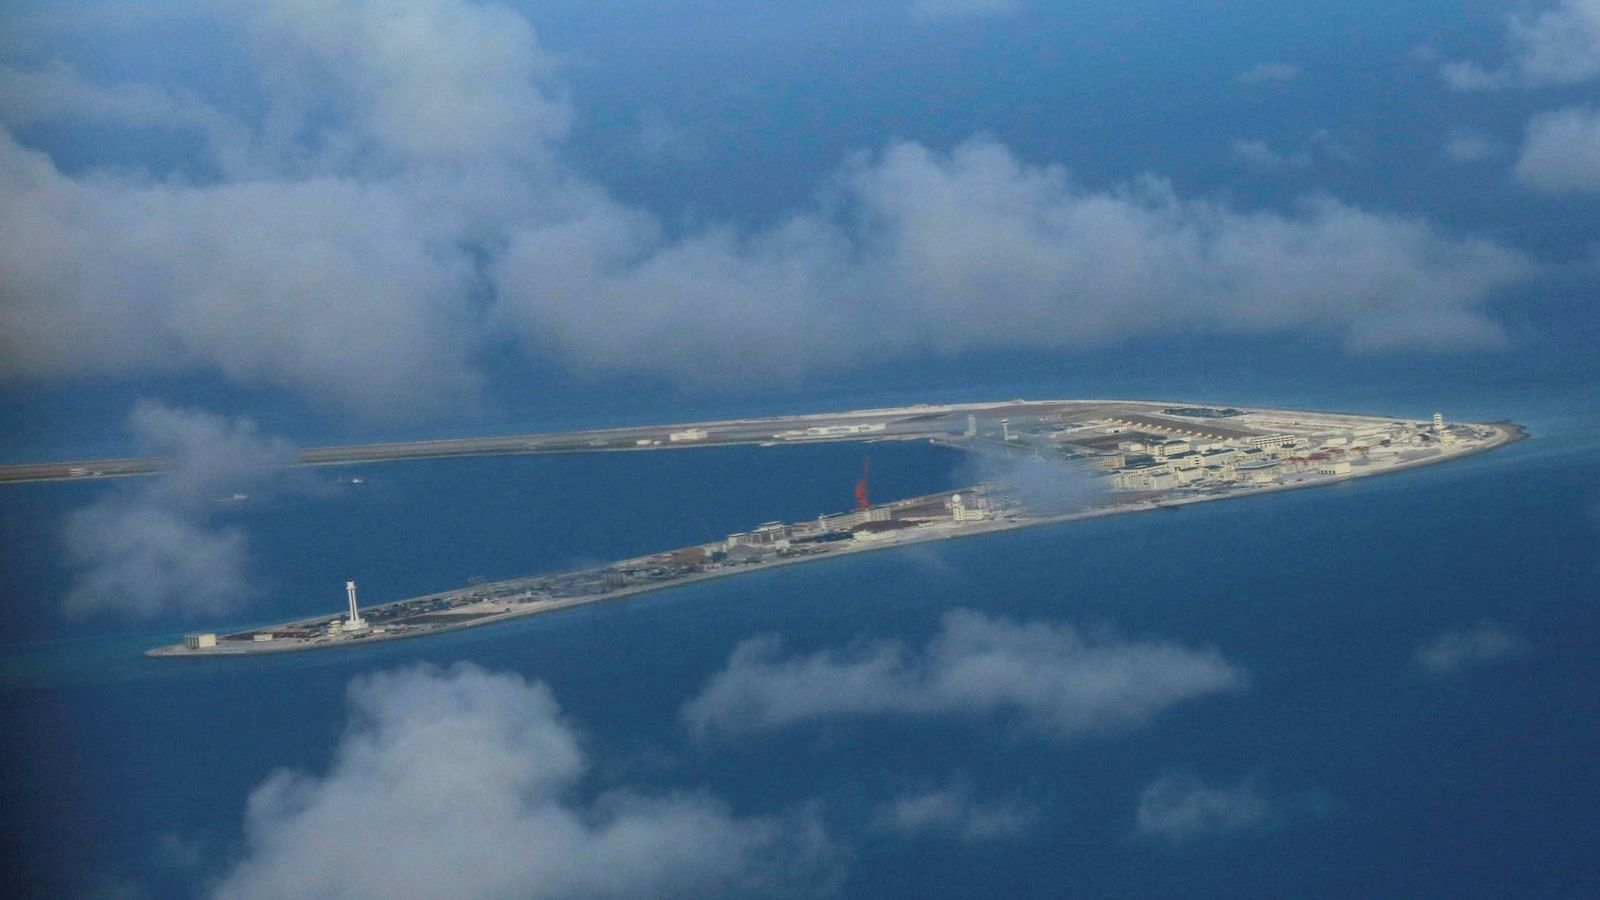 Foto: Vista aérea de un islote de las Spratly ocupado por China, en el Mar del Sur de China. (Reuters)